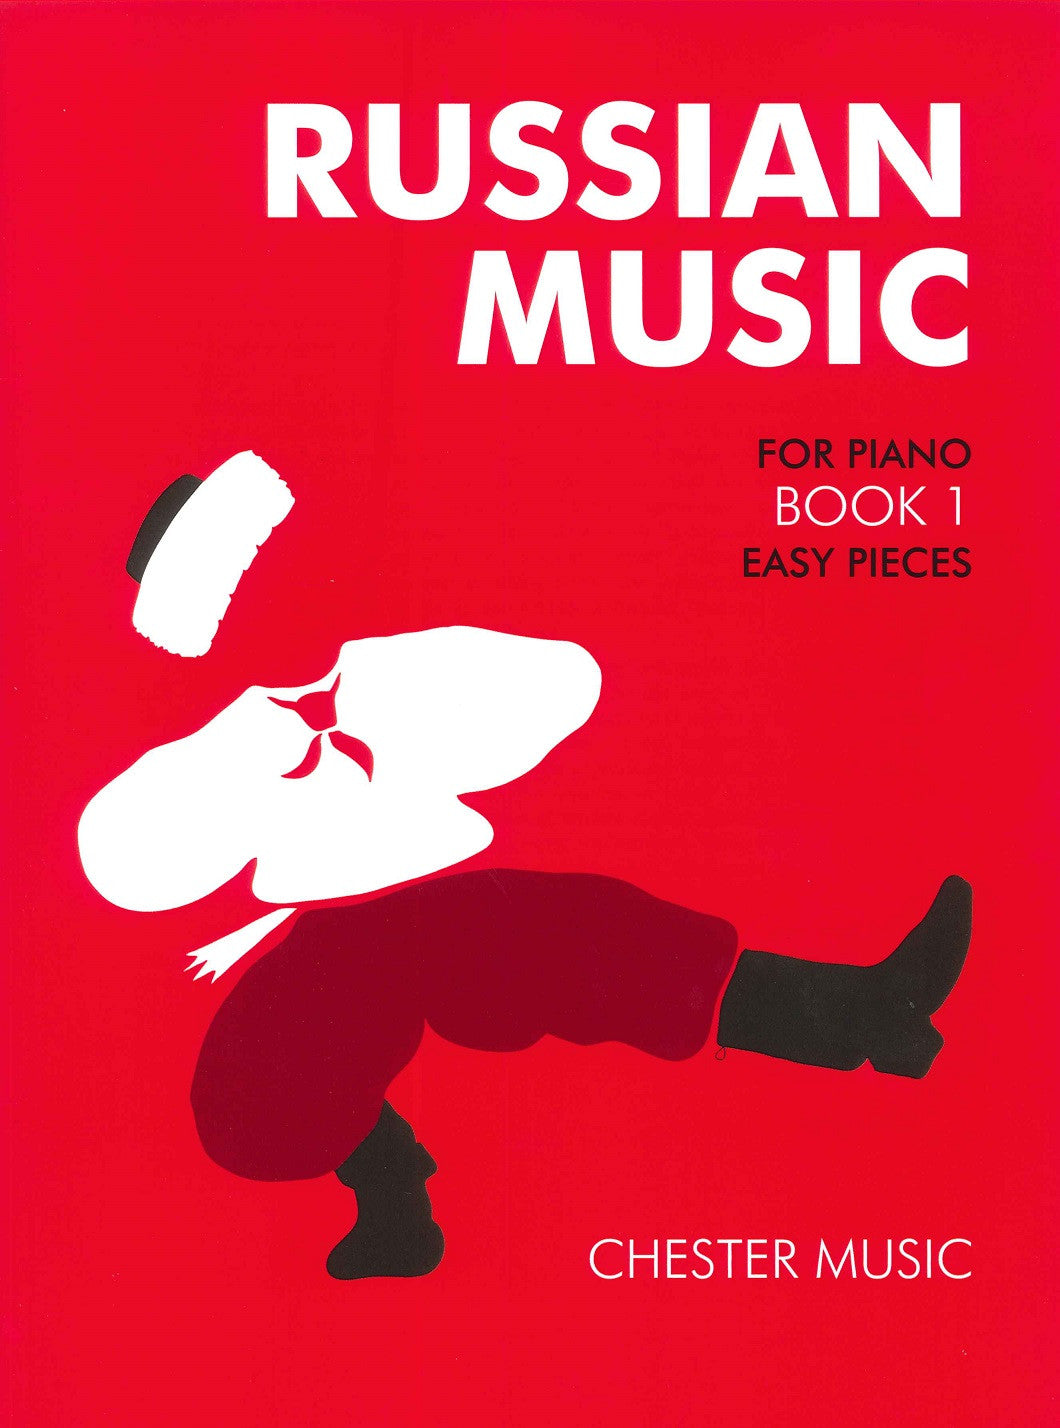 Russian Music for Piano Book 1